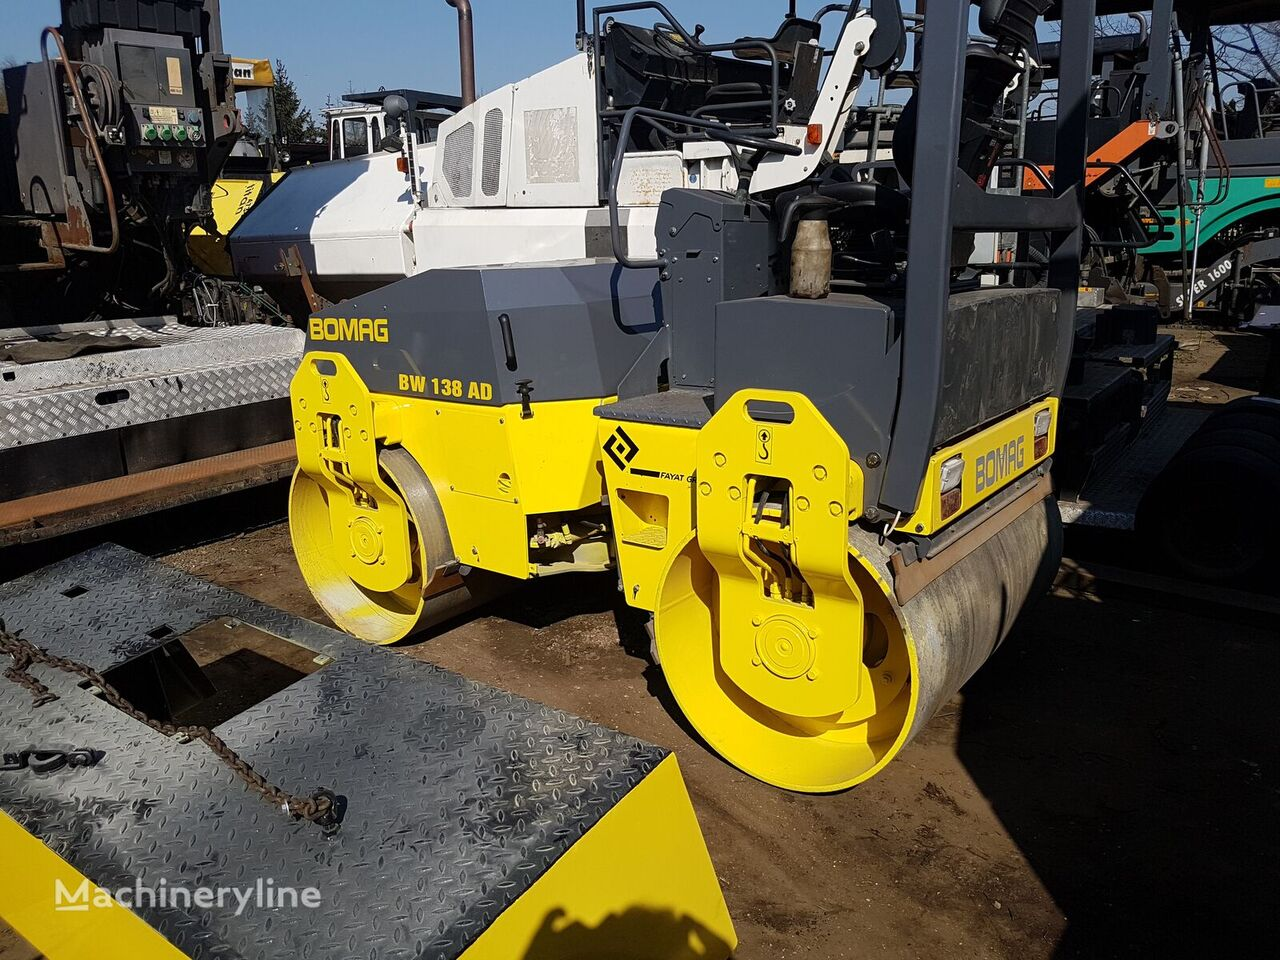 BOMAG BW 138 AD mini road roller